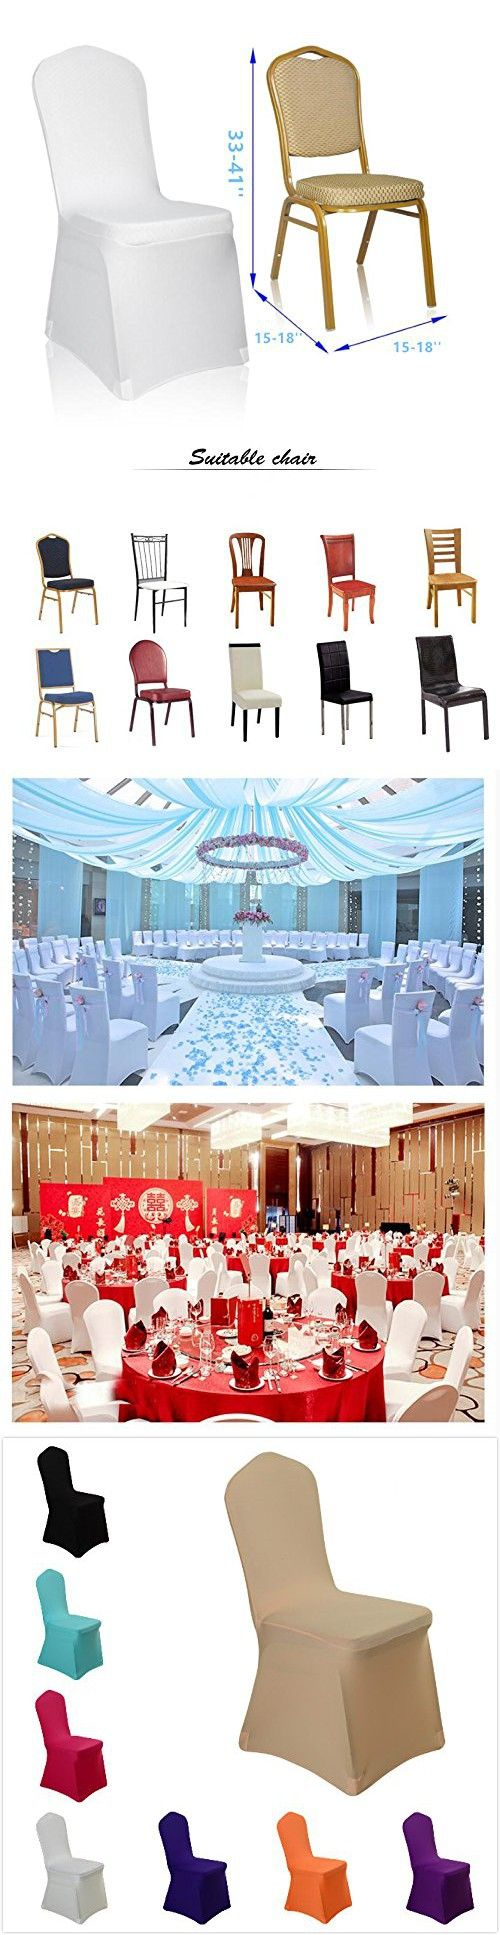 Uniquemystyle Stretch Polyester Spandex Dining Chair Cover for Wedding Banquet Party Many Colors (Champagne)